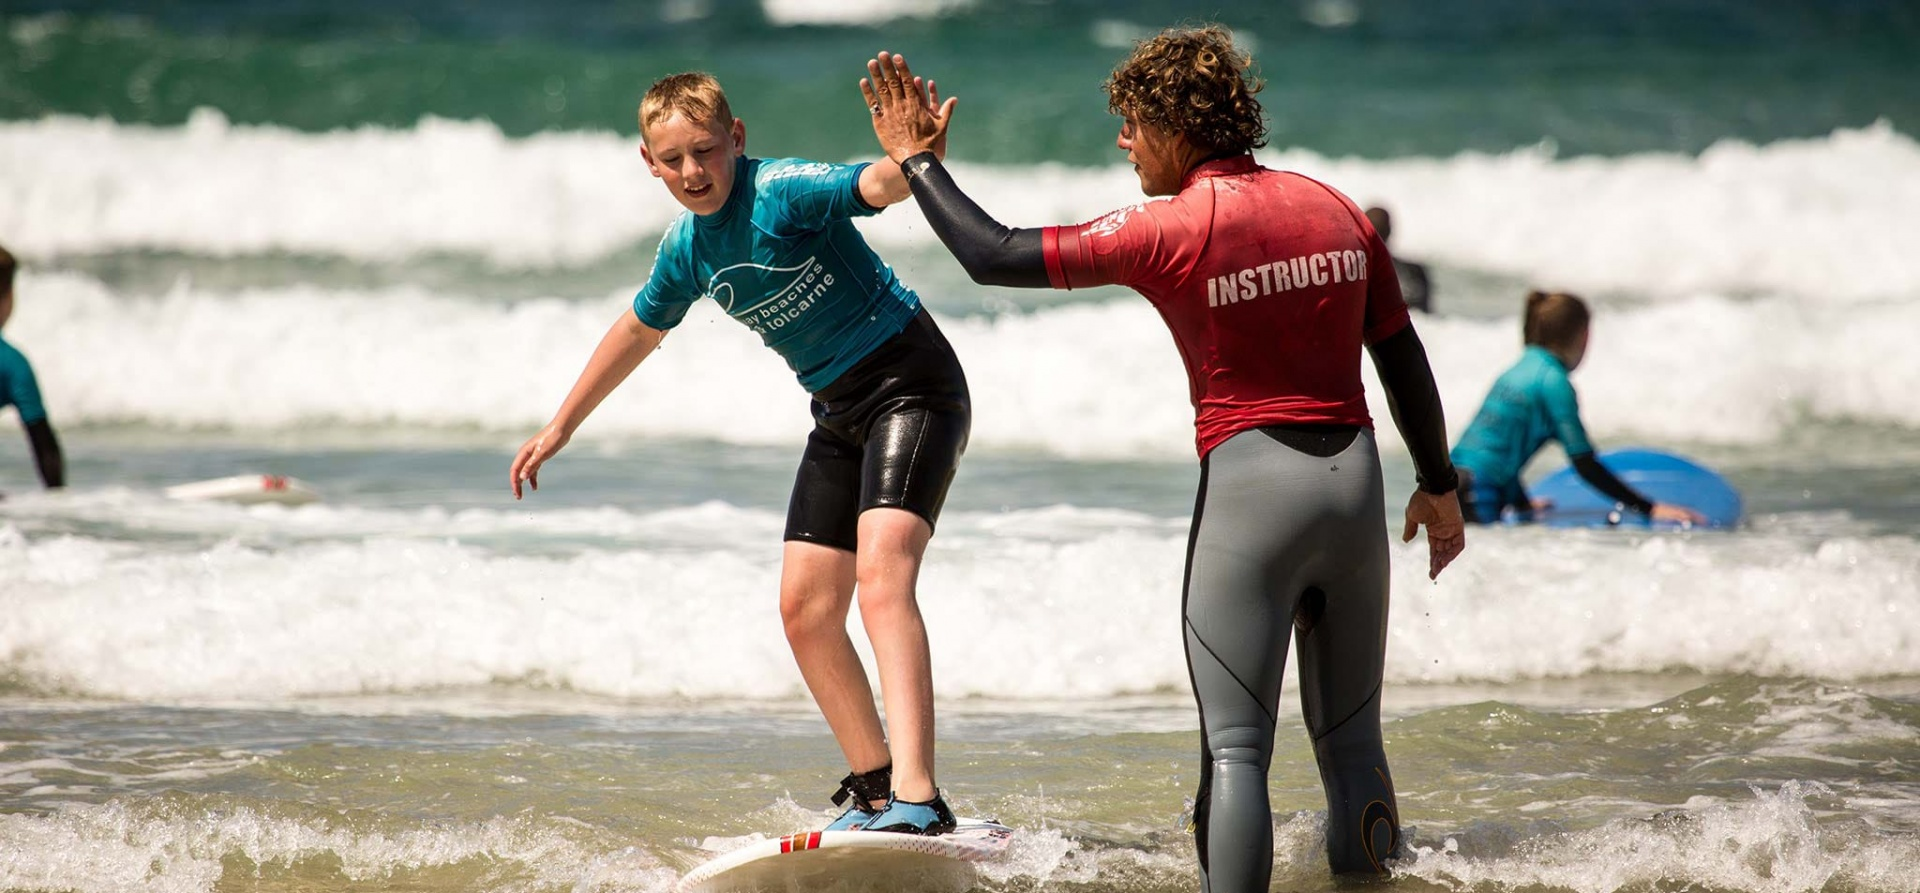 Private Surfing Lesson For 2 - Cornwall-1